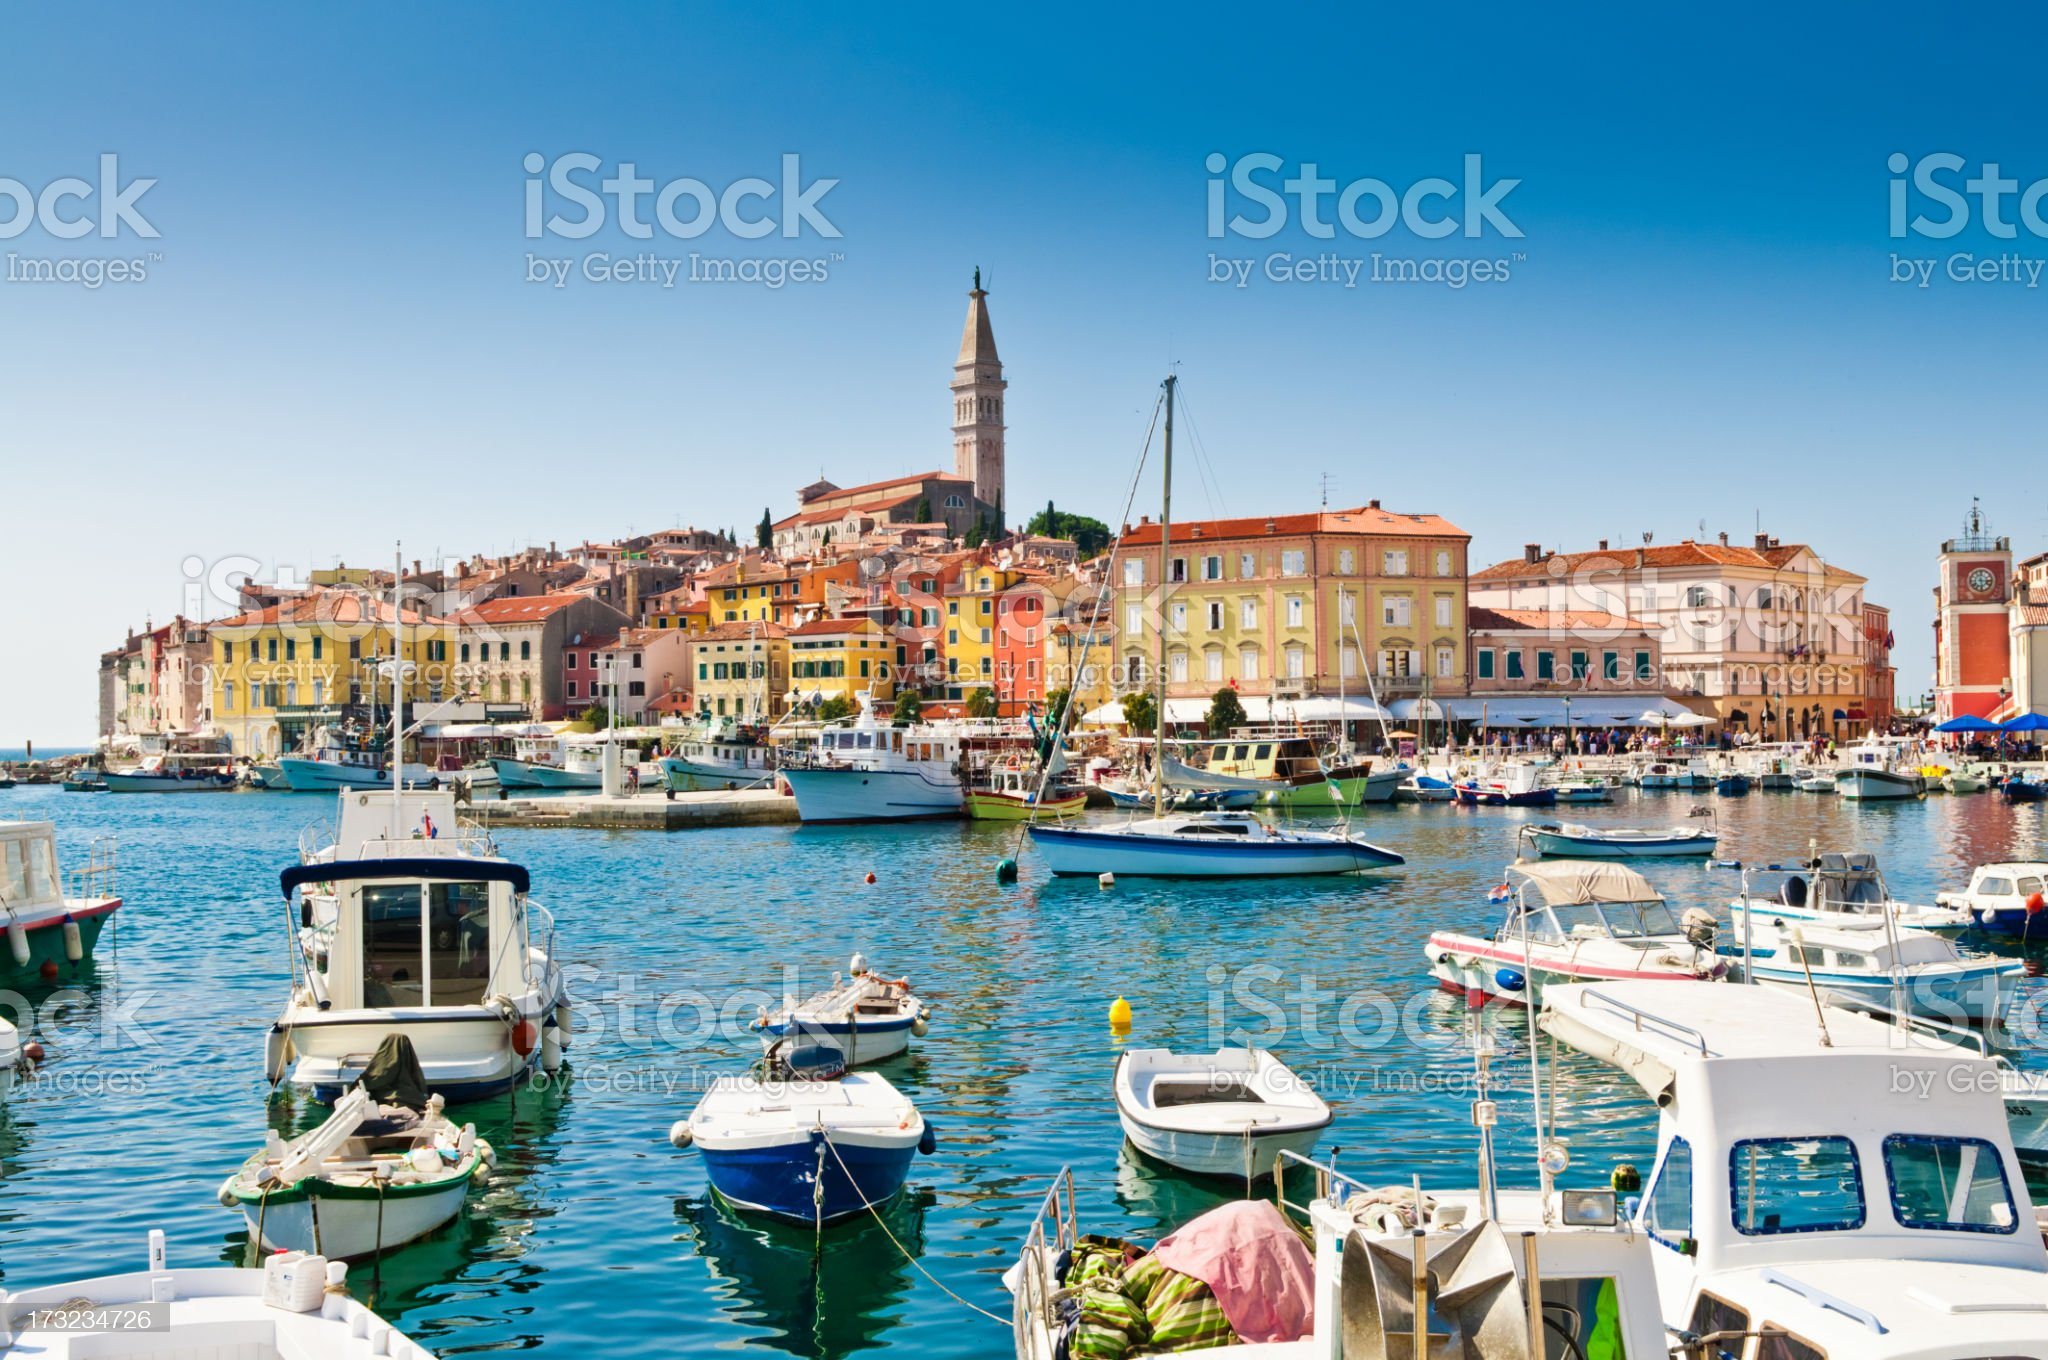 Old town, Rovinj Harbor, Croatia royalty-free stock photo